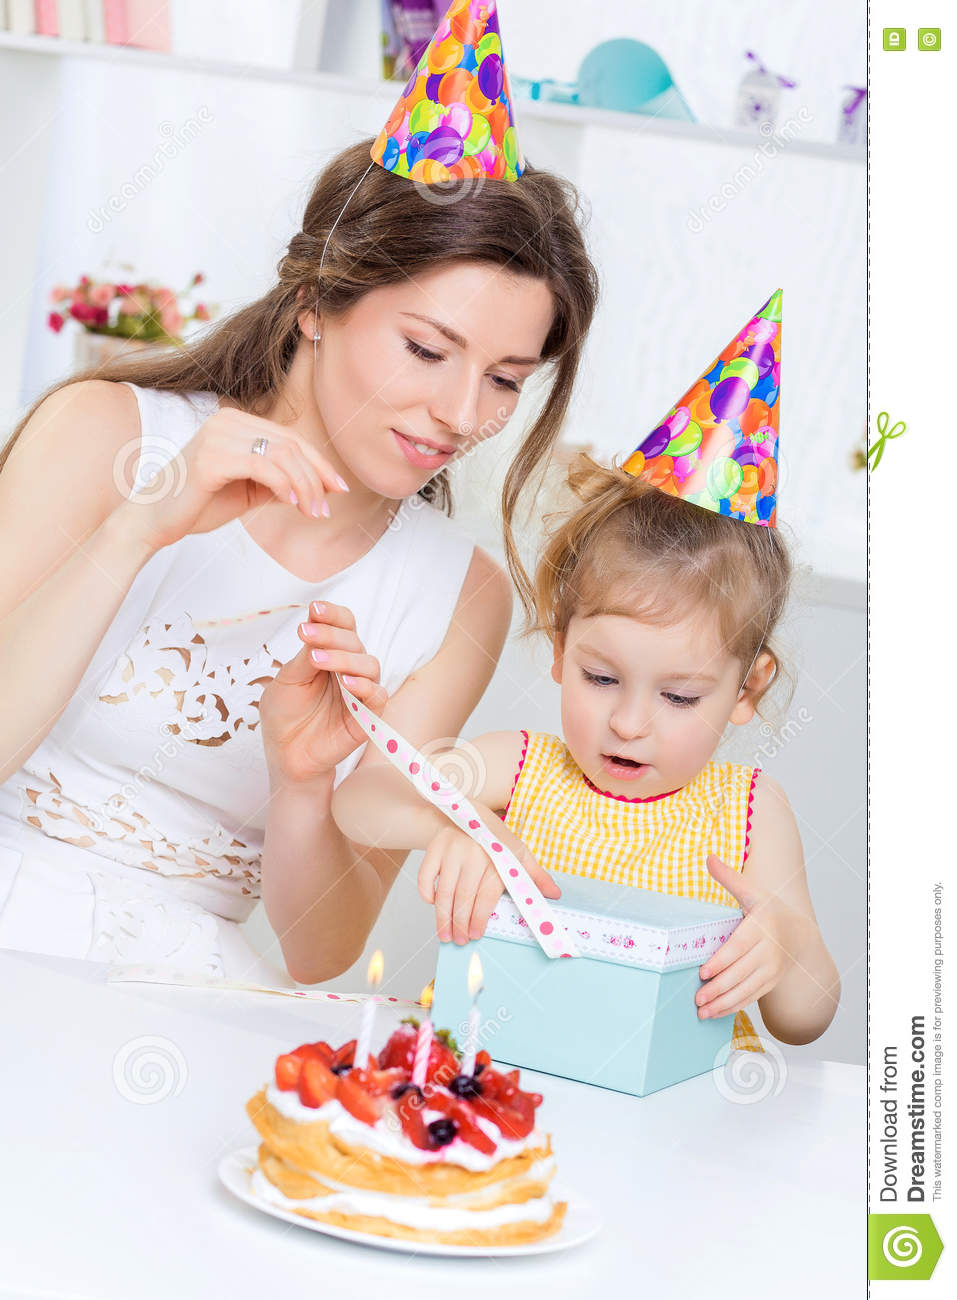 Young Beautiful Mother And Her Little Daughter Are Celebrating A Birthday On The Table Is Cake With Candles Happy Baby Mom Gives Gift